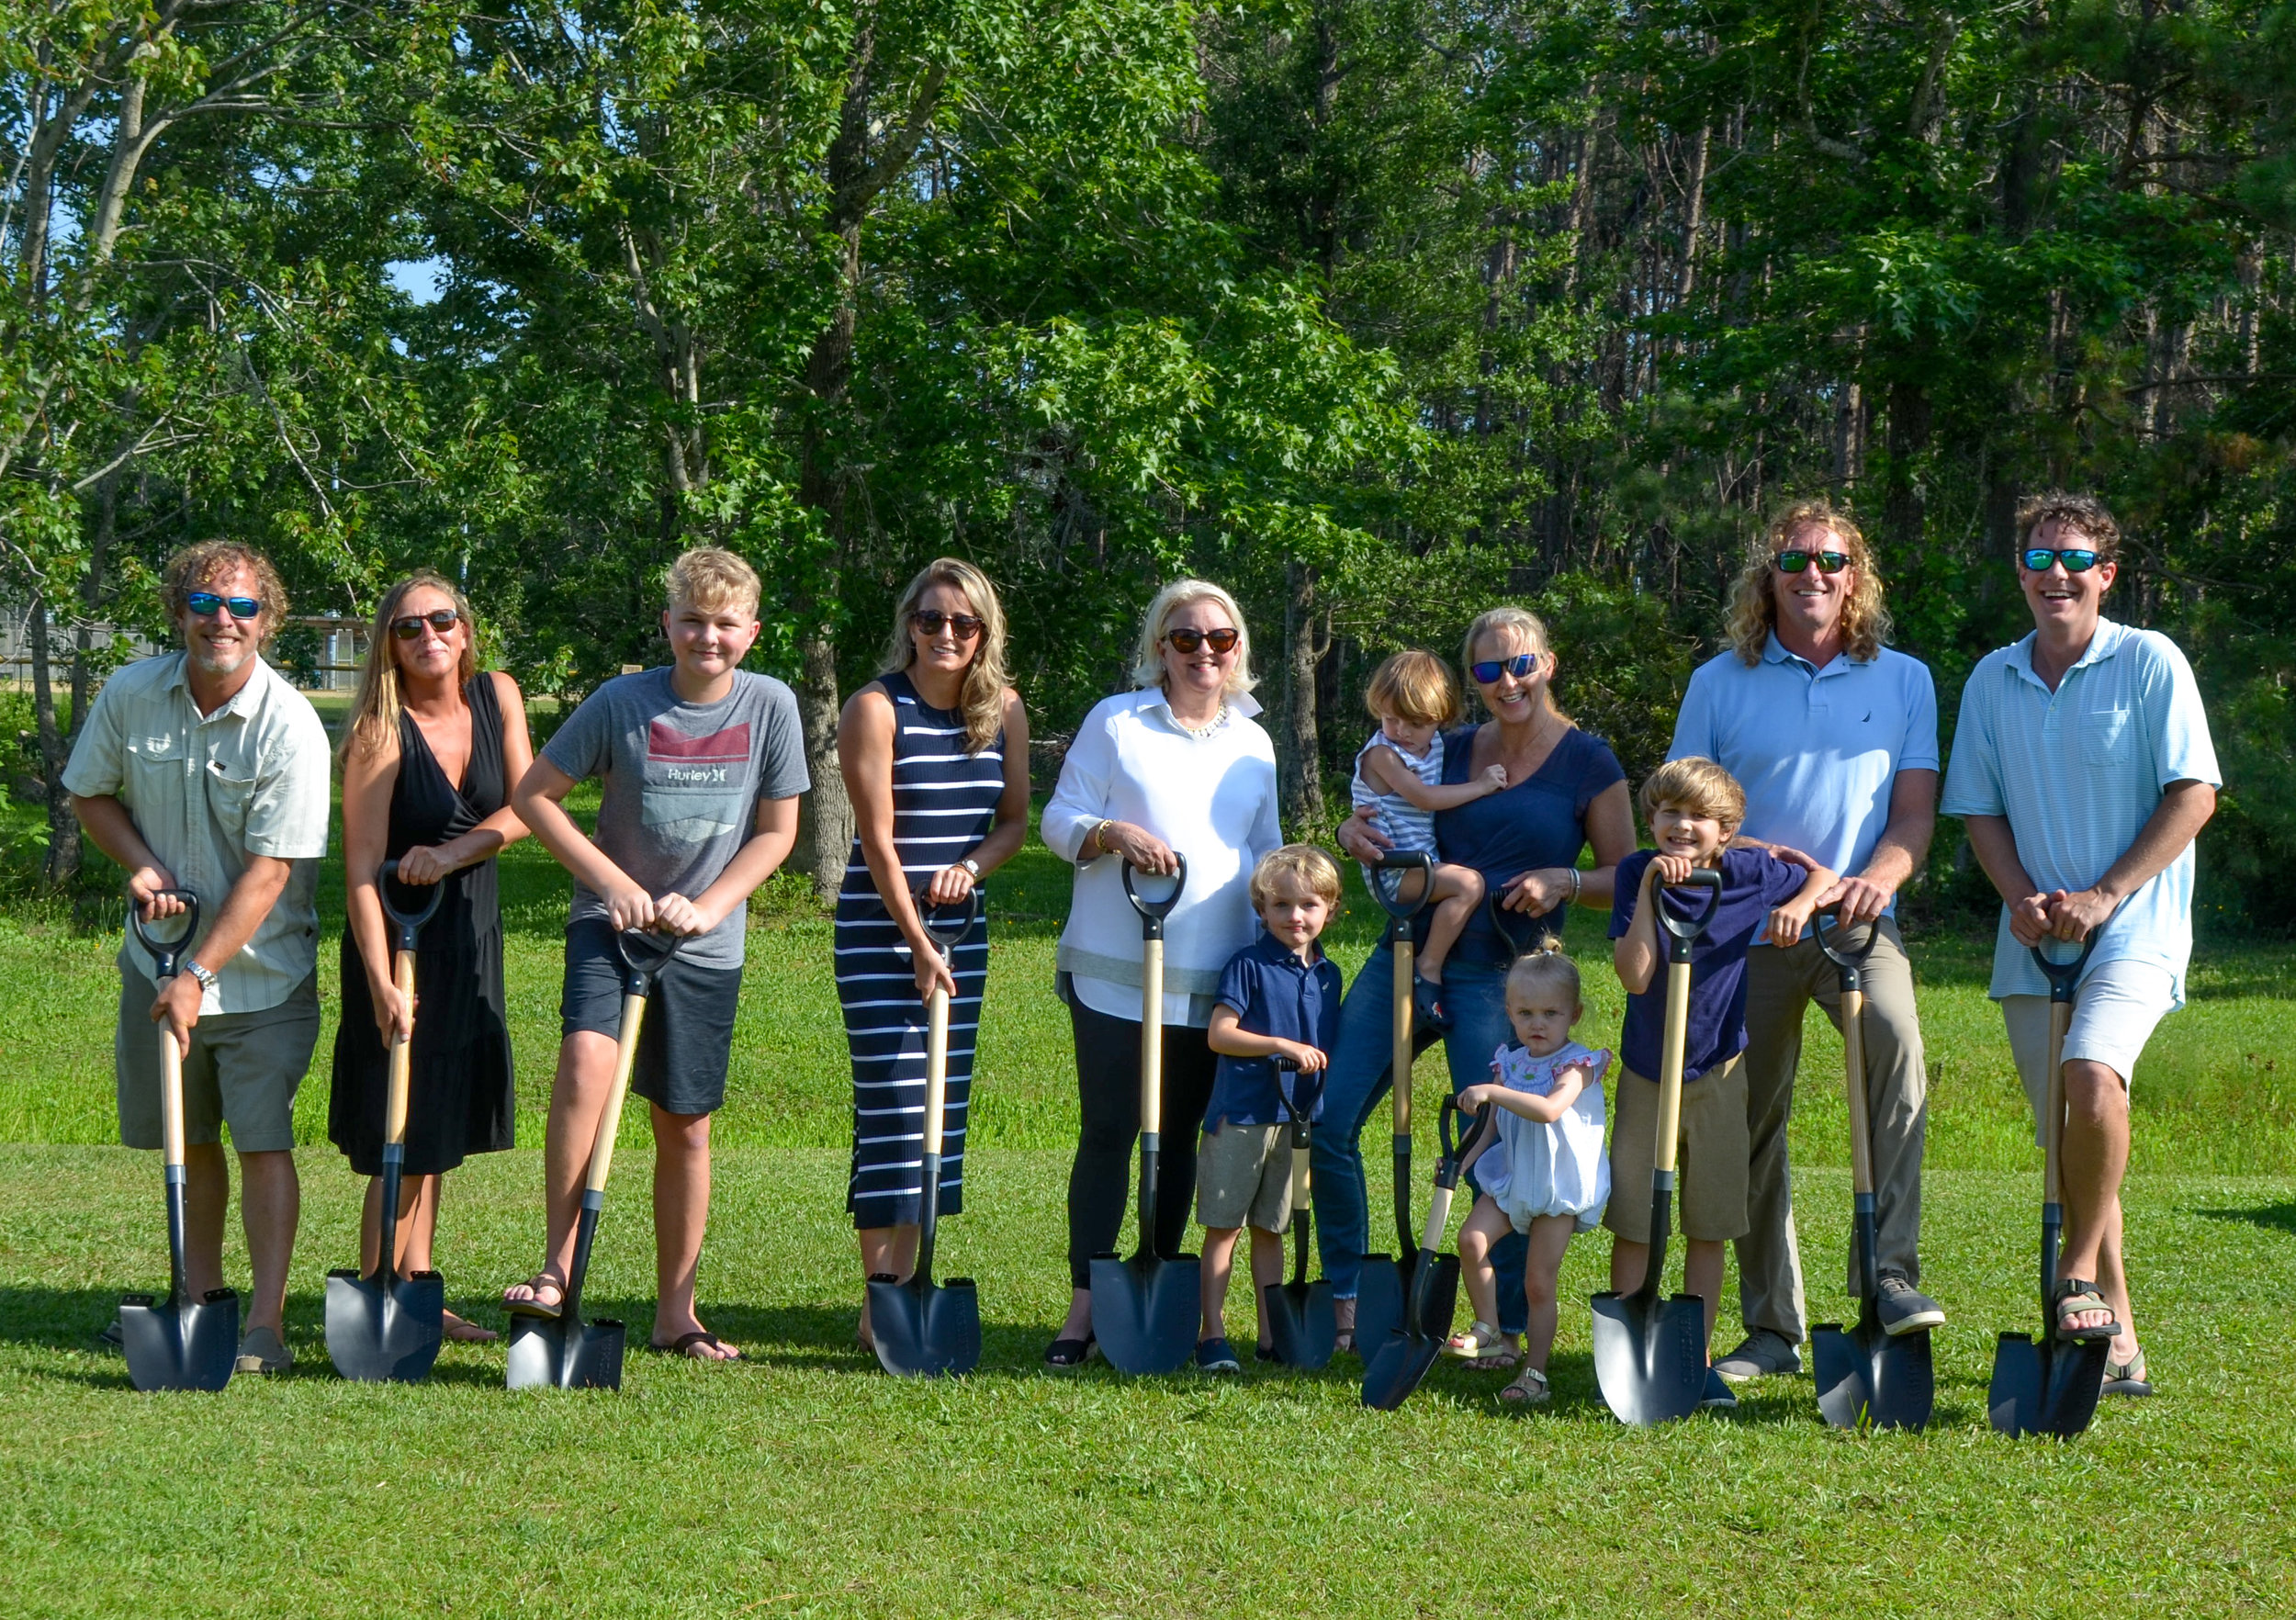 On June 19, 2019, a ground-breaking ceremony was held at Eastern Park in Smyrna, NC for the new installation of the inclusive play-set in honor of Sarah James Fulcher. Members of her family and Another Perspective were present to celebrate!